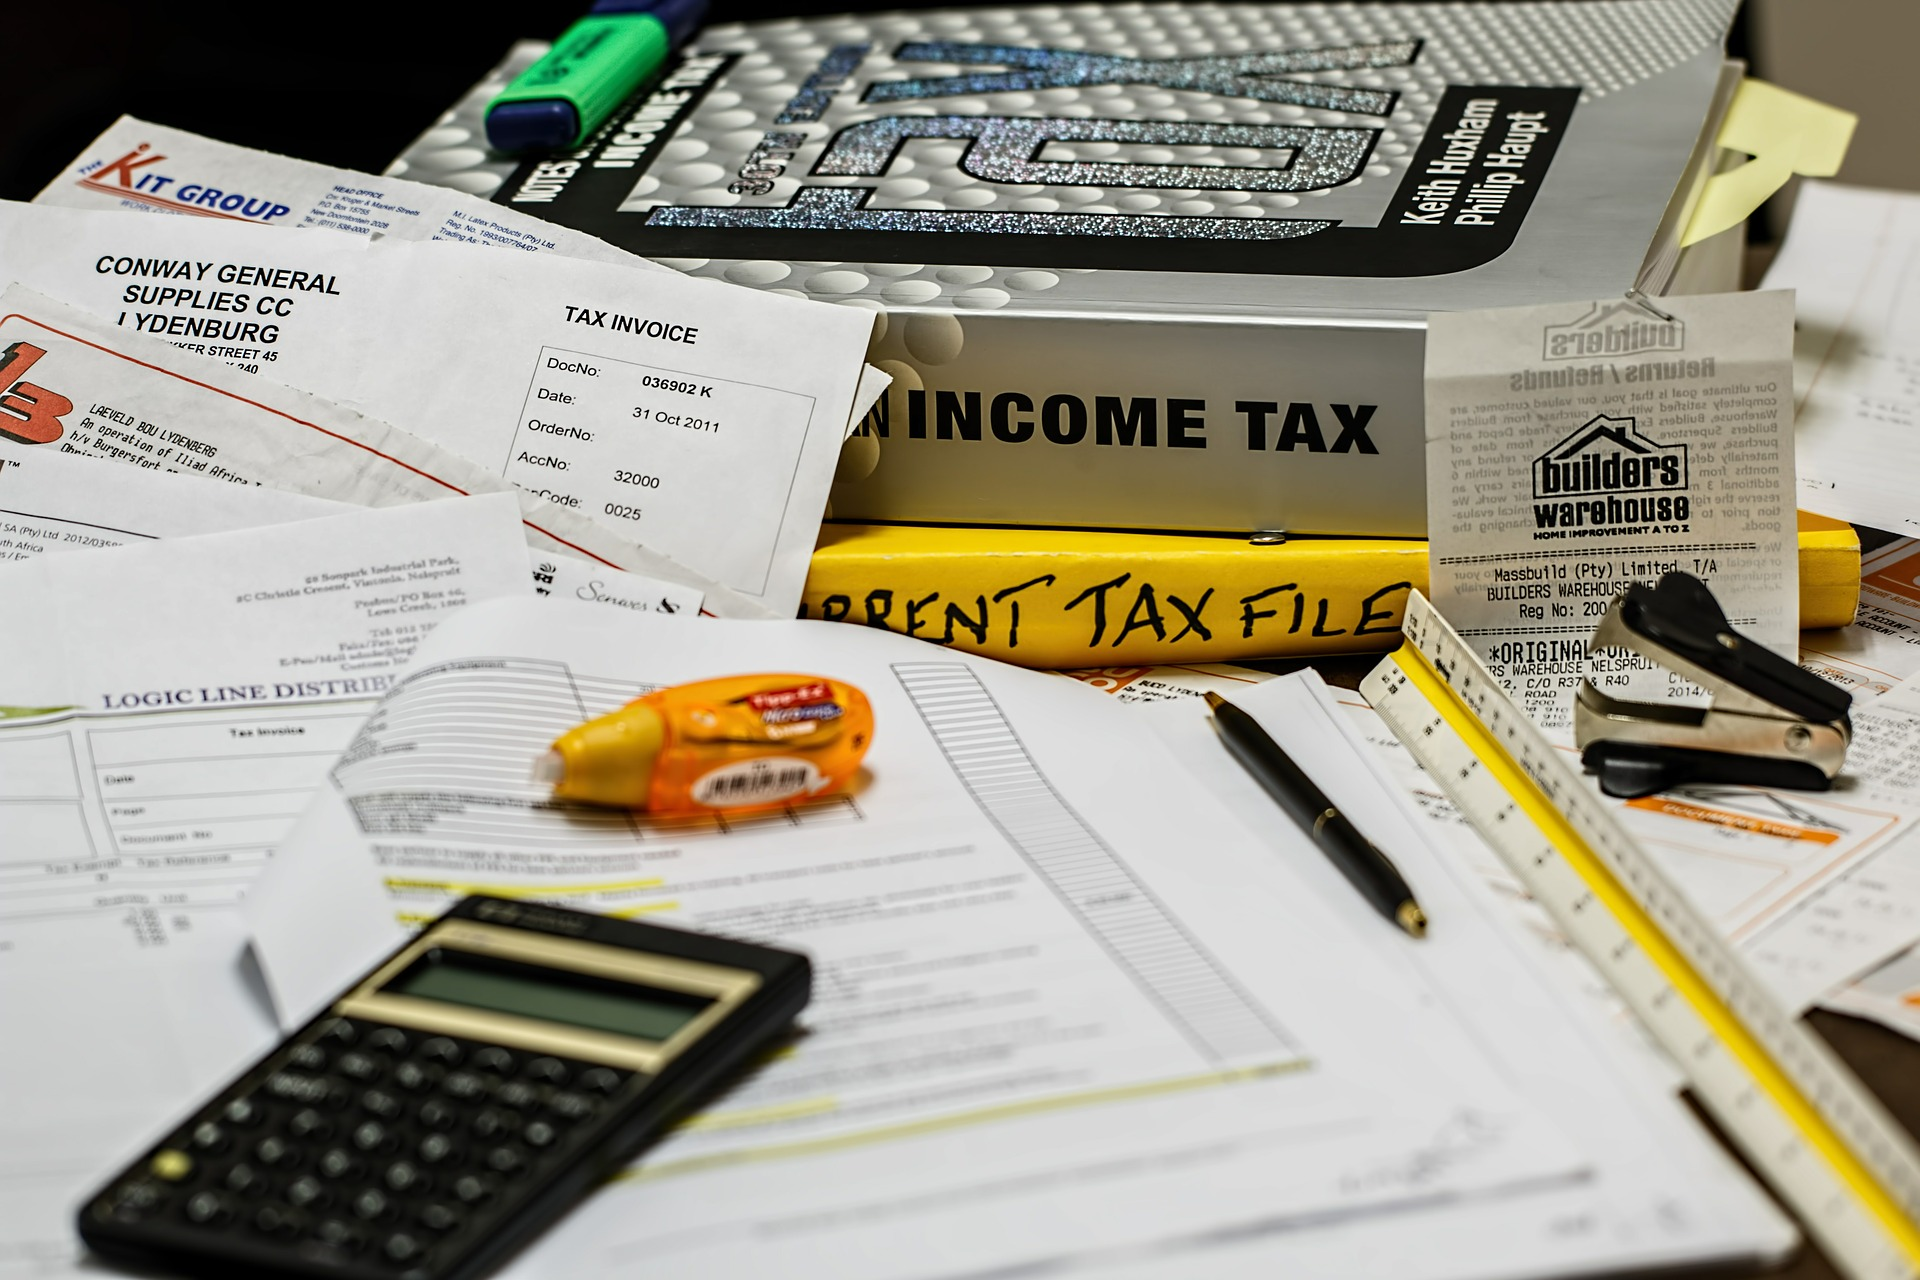 Credit Card Payments and Tax Refunds: Leroy Was Right